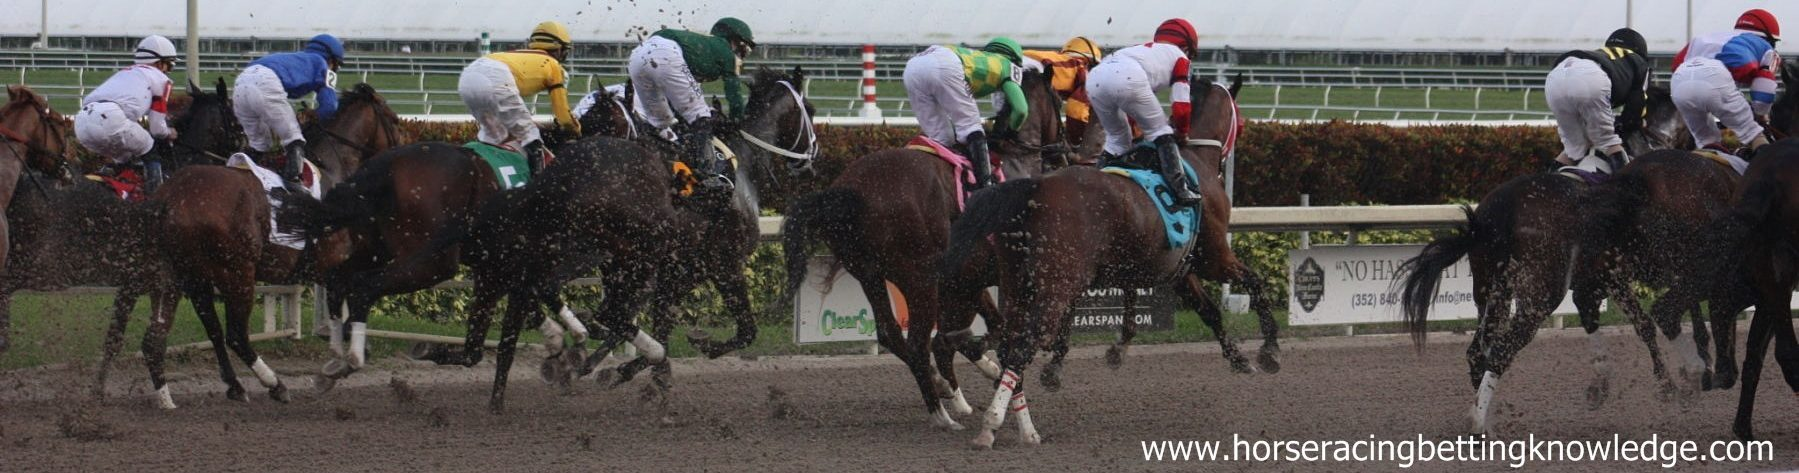 Horse Racing Betting Knowledge